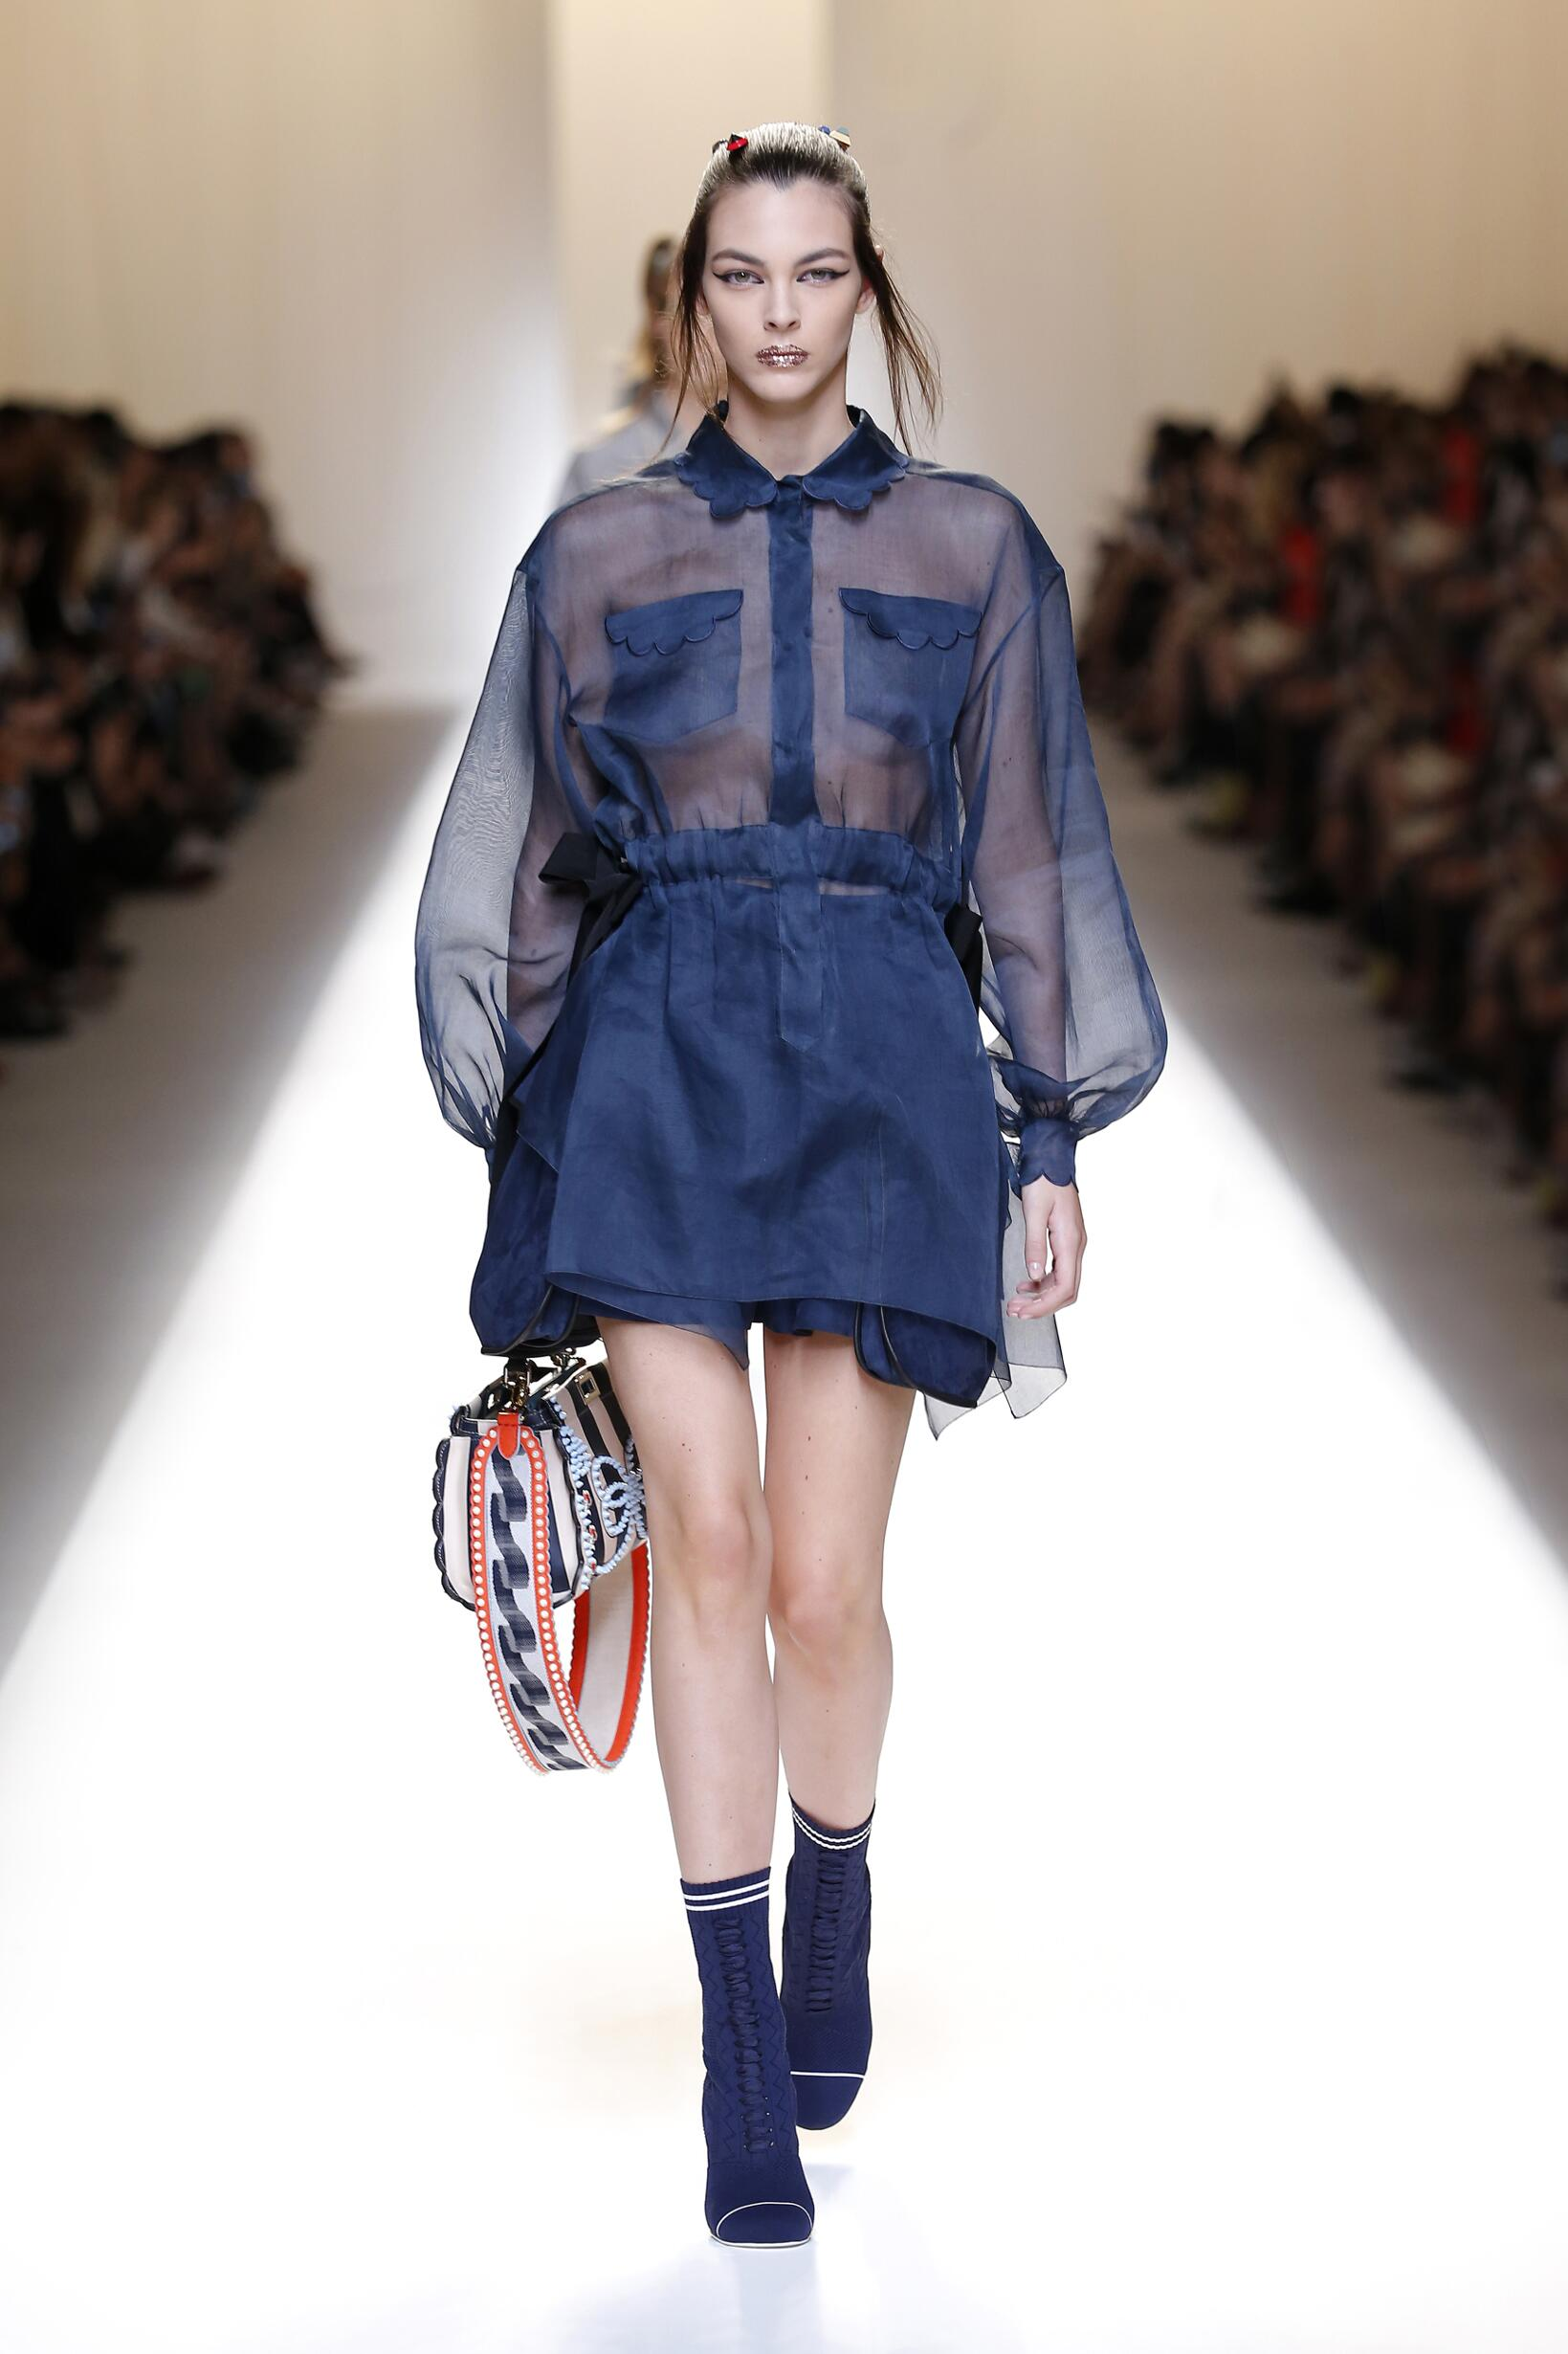 fendi week collection milan rococo summer spring runway inspired ss woman womens looks arab modern